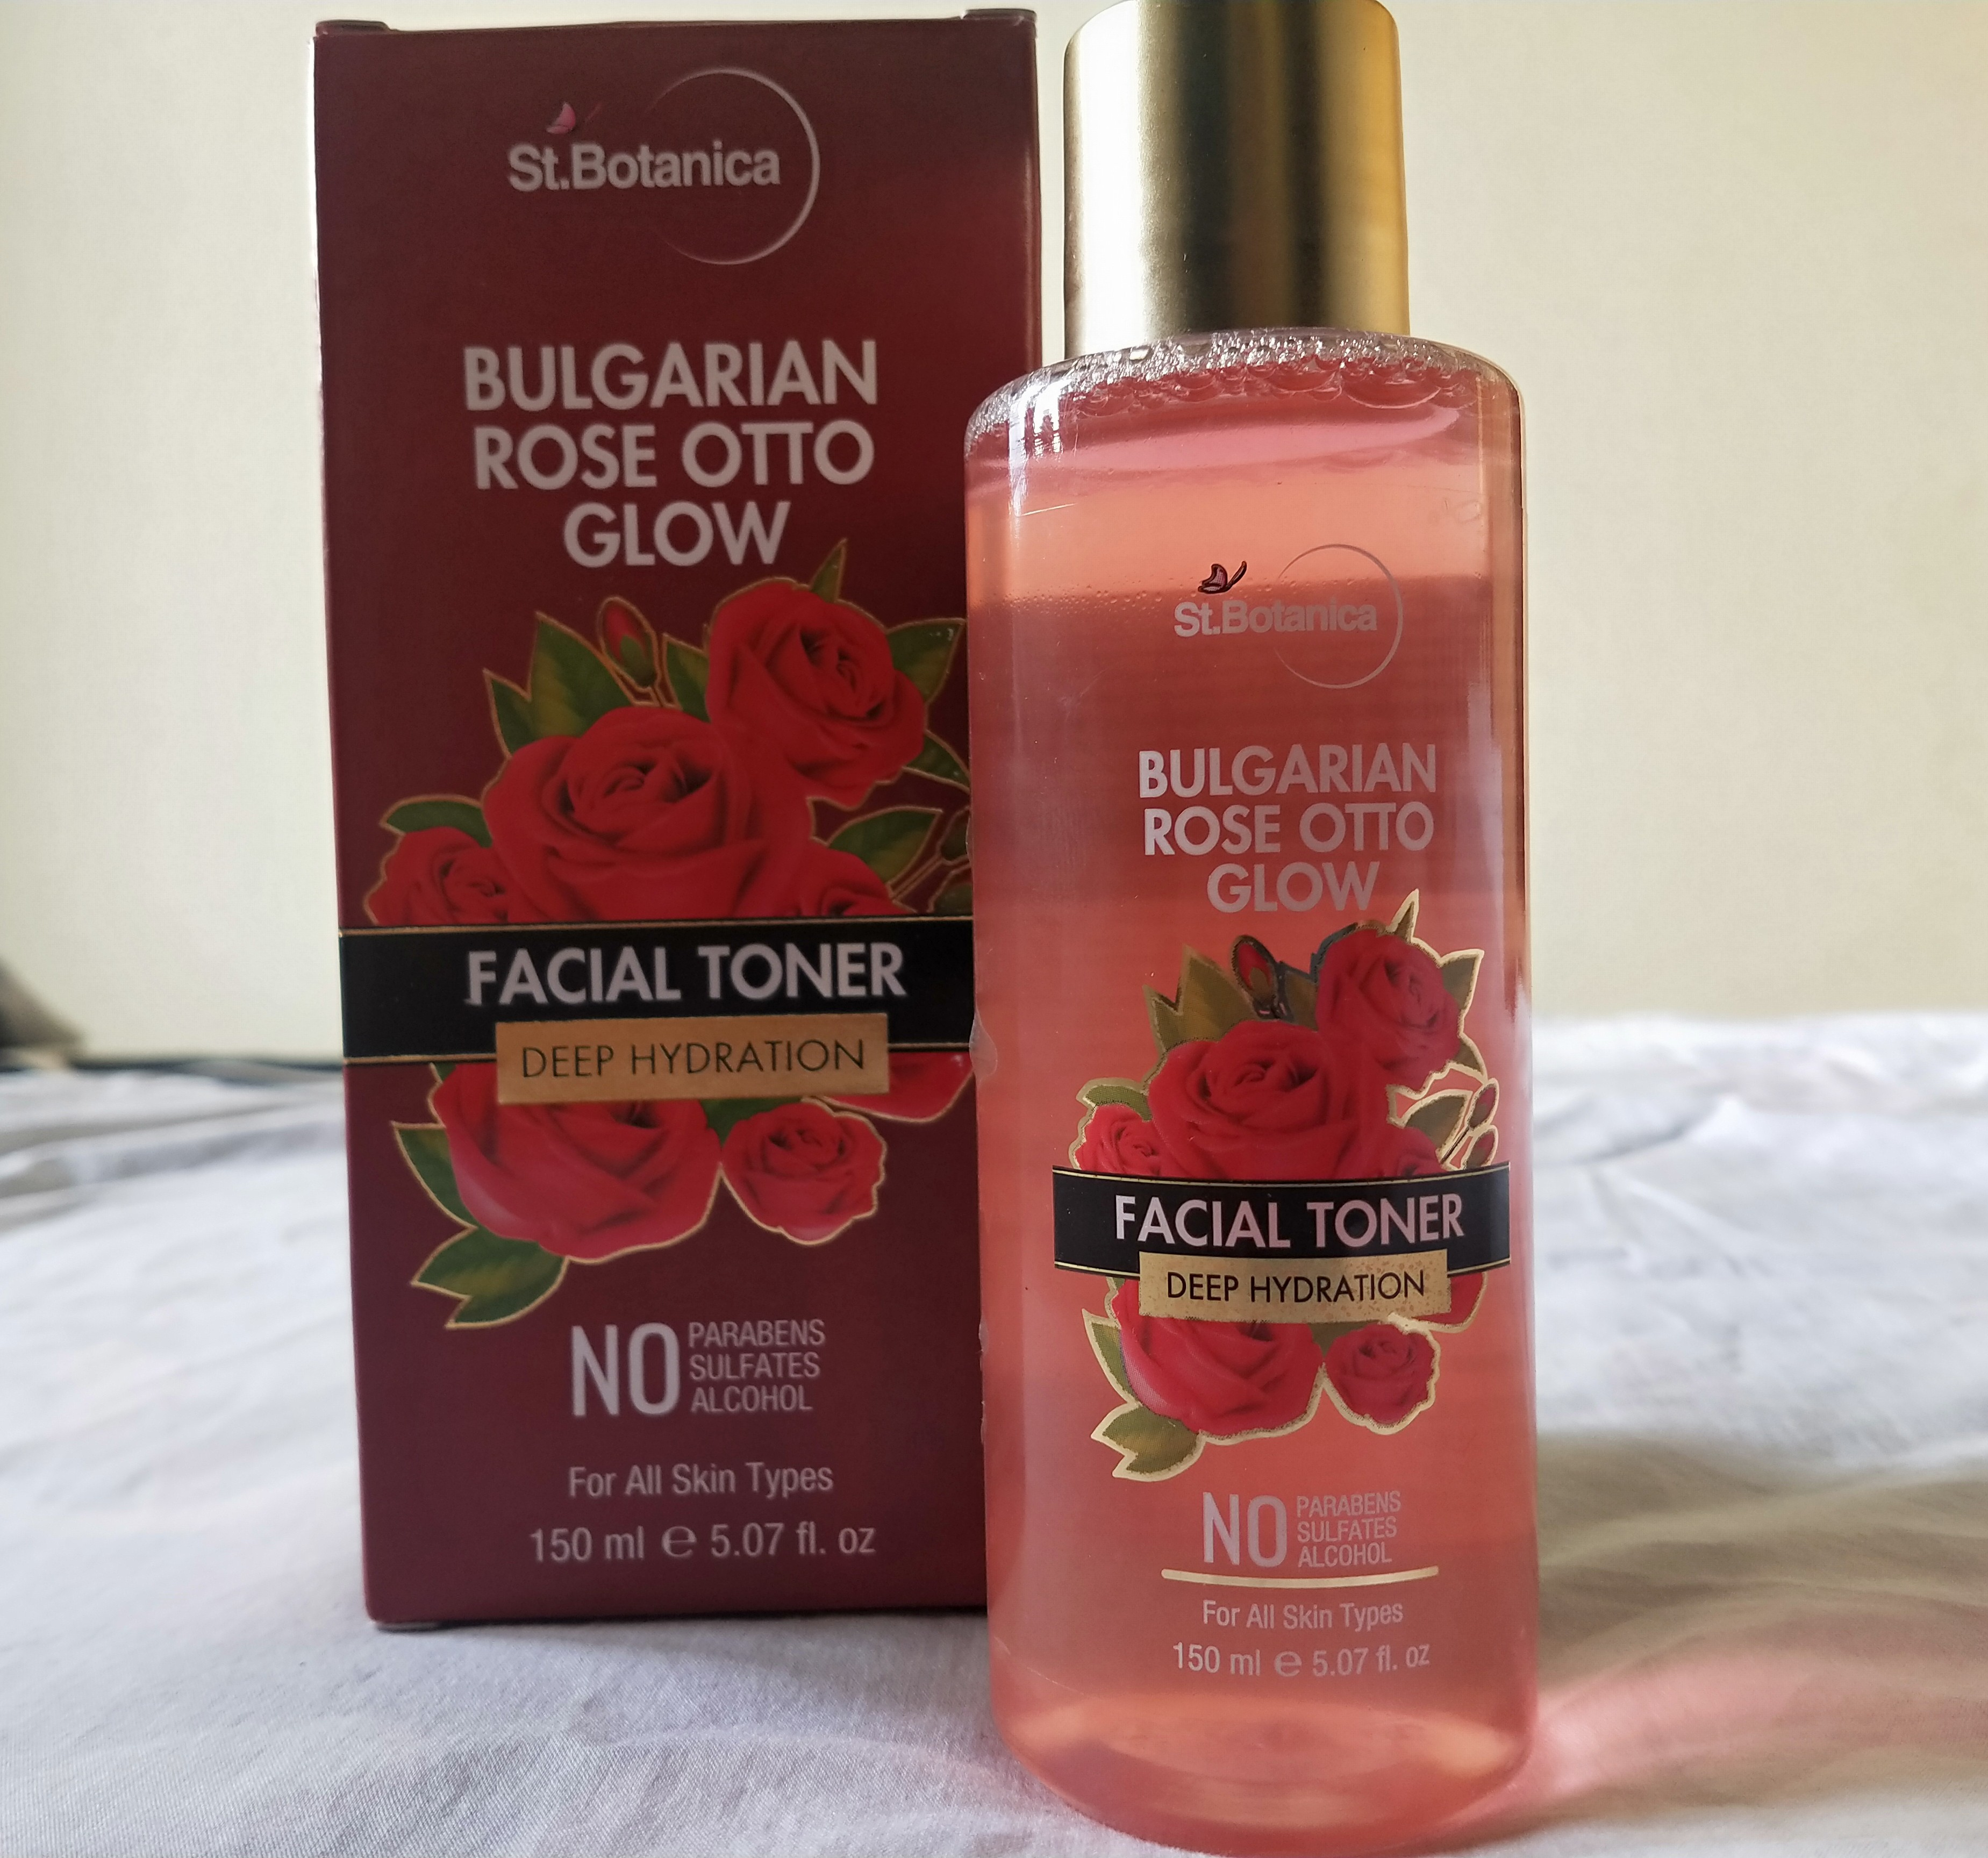 StBotanica Bulgarian Rose Otto Glow Deep Hydration Facial Toner pic 1-Rose toner – good for hydration-By miss_hungry_soul